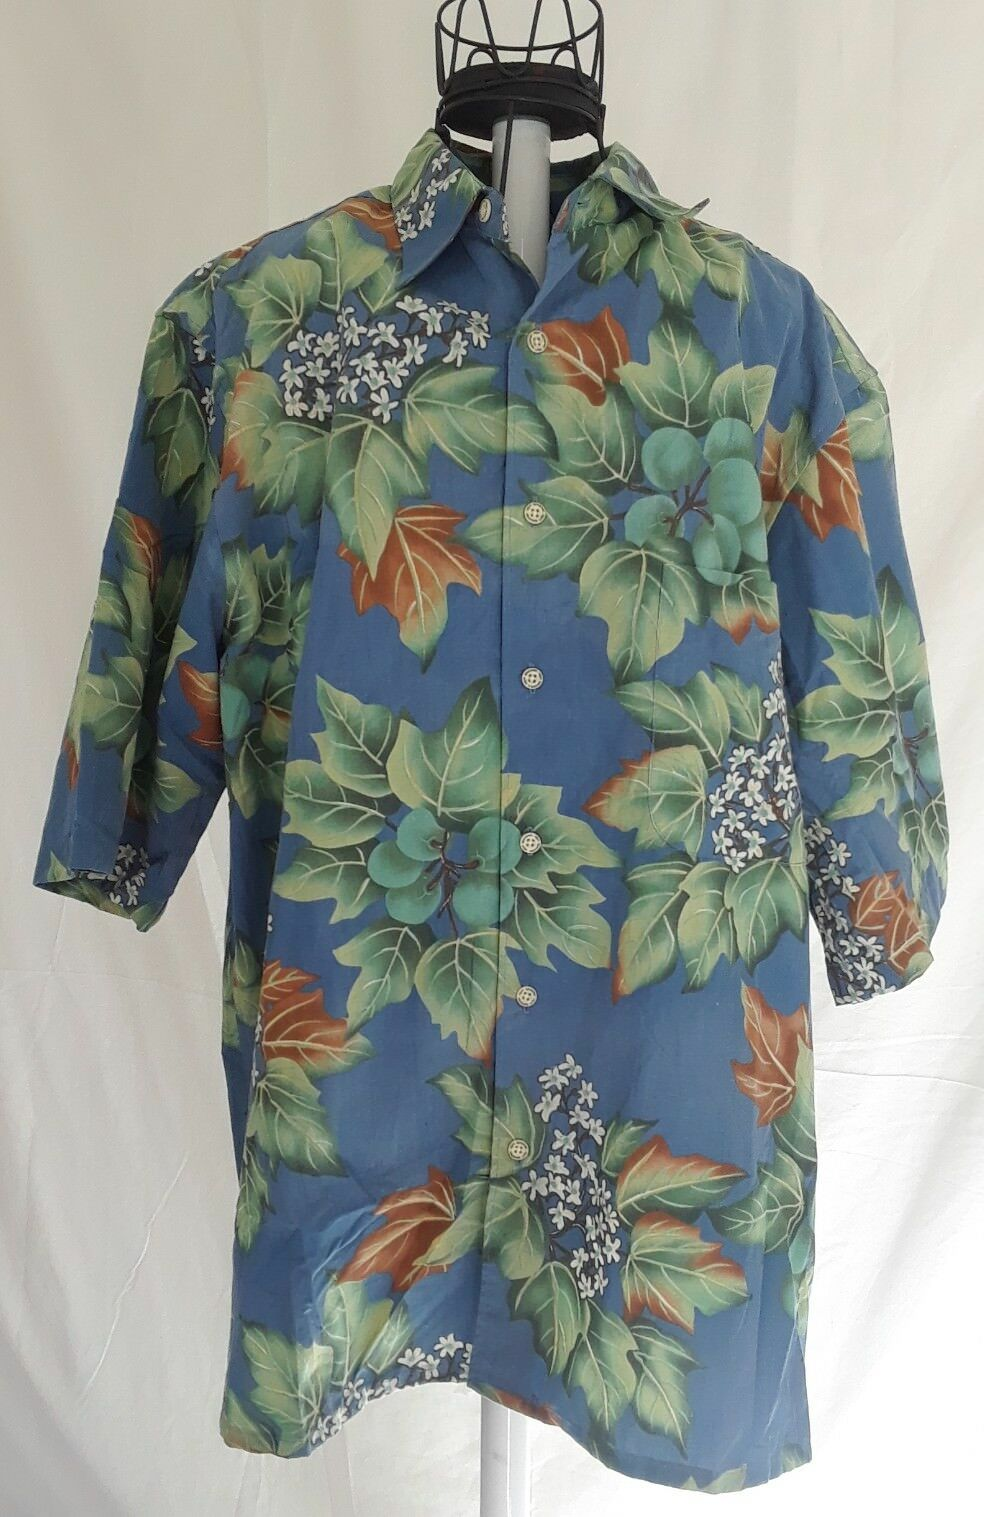 f566fd54 Reyn Spooner Hawaiian Shirt Mens Medium Floral Reverse Print Korea Vintage  bluee neequu6662-Casual Shirts & Tops